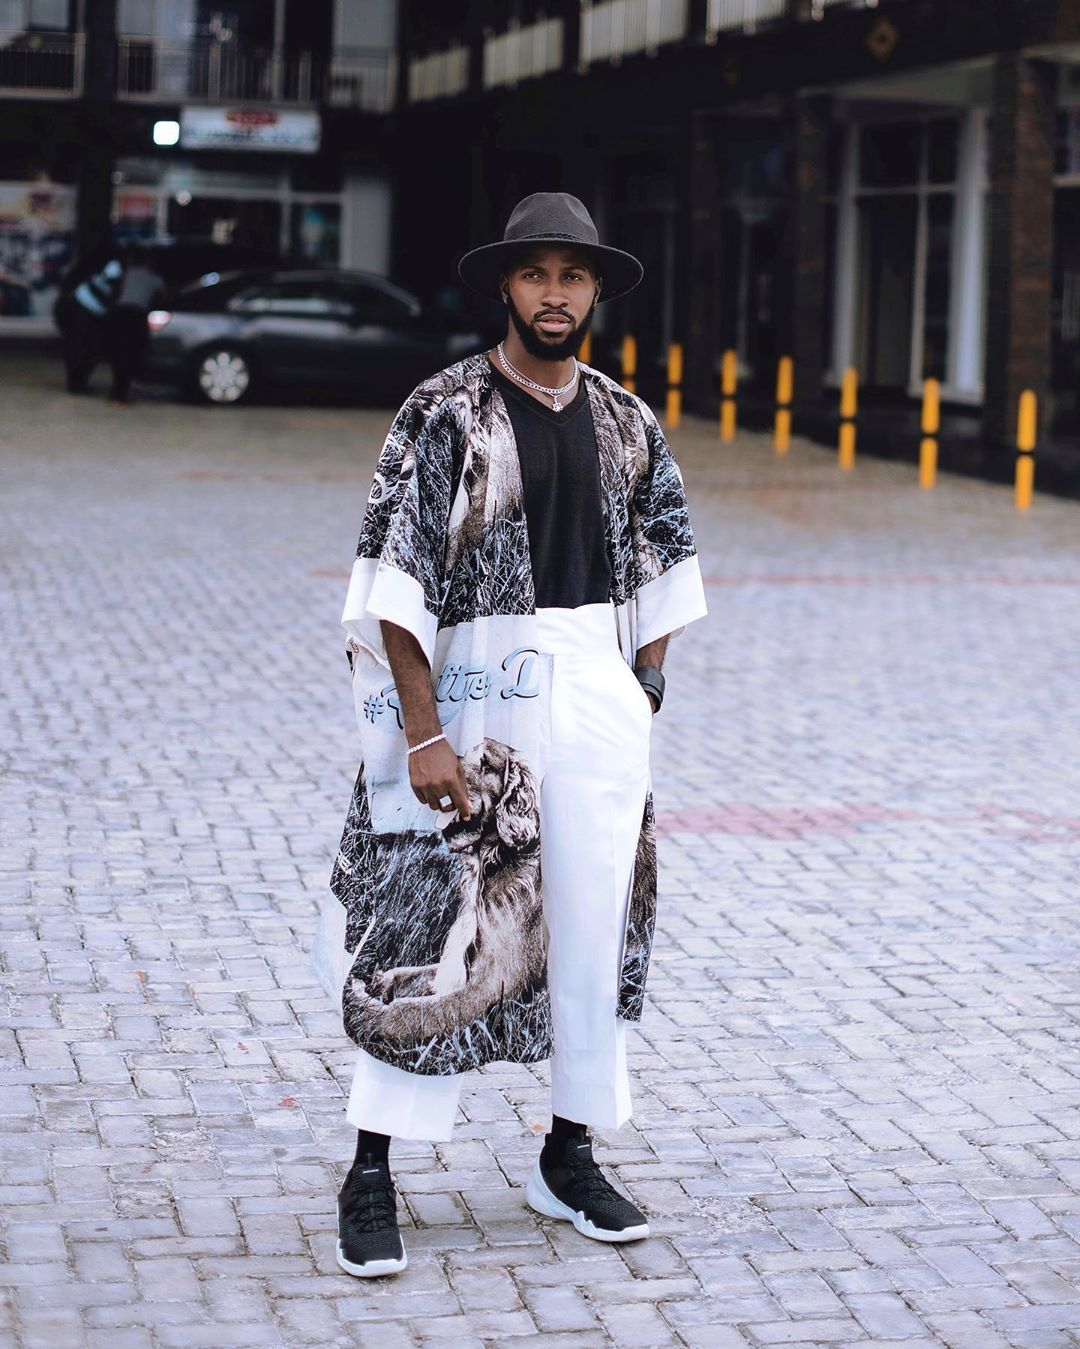 african-male-celebrities-fashion-style-africa-men-best-dressed-style-rave